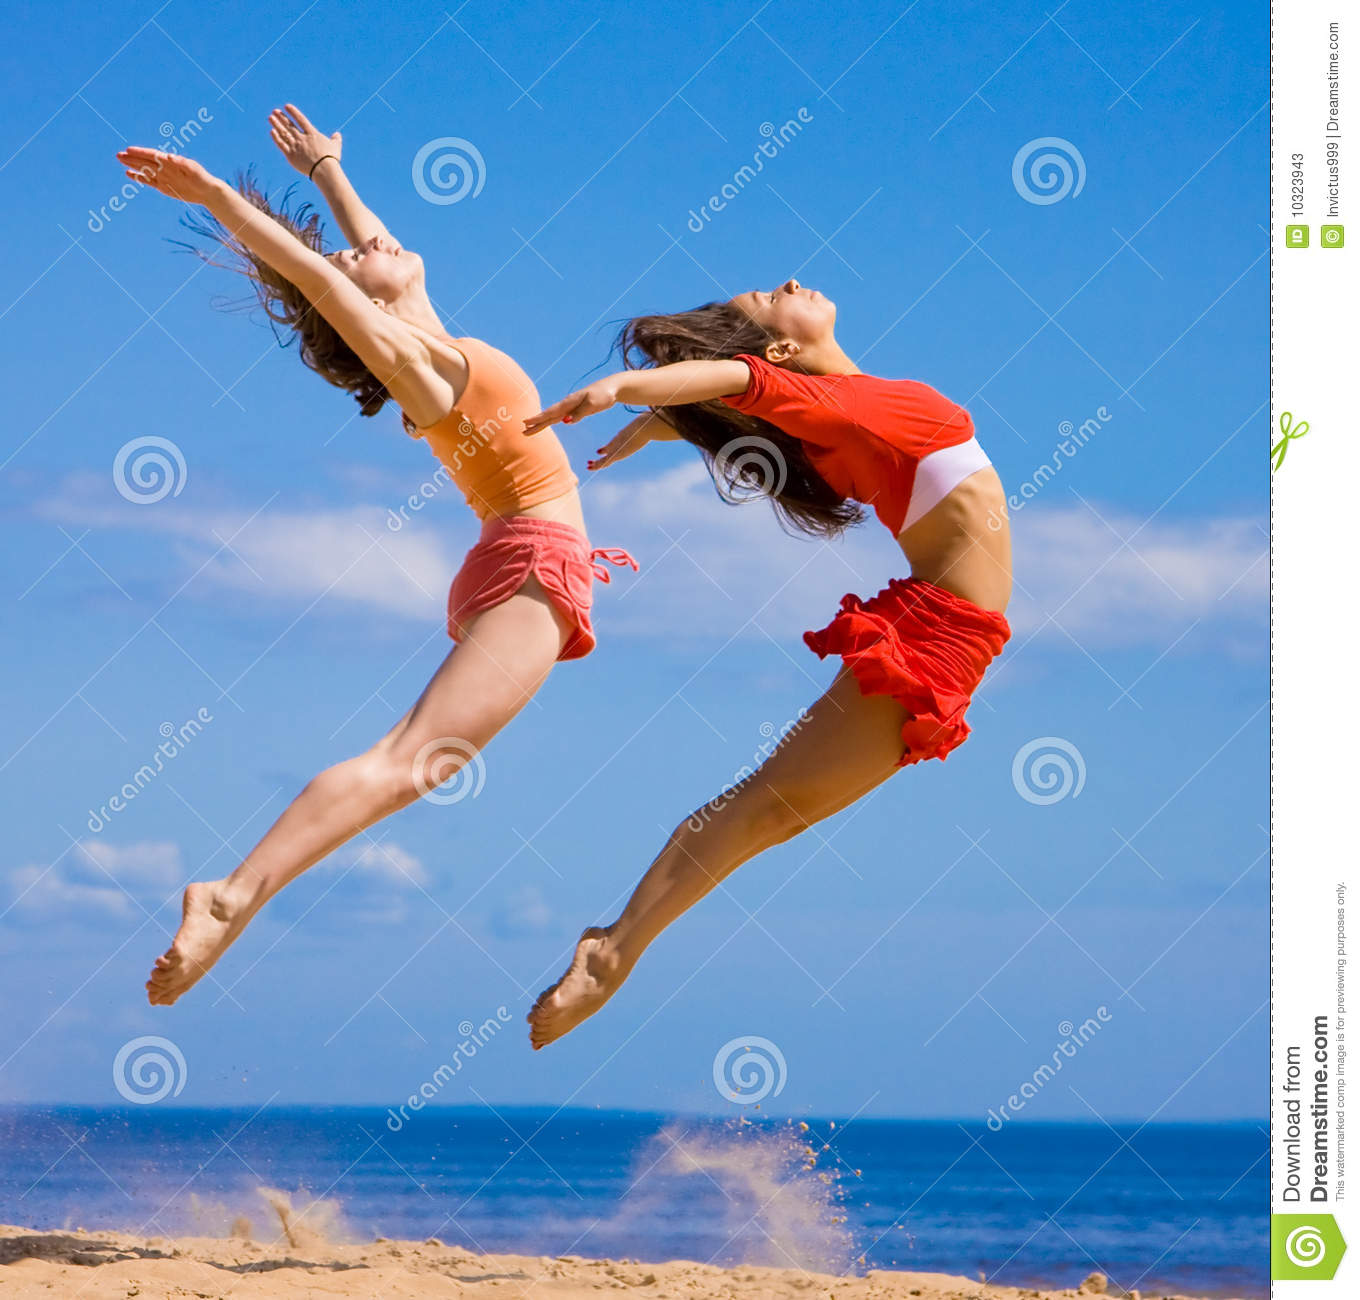 Sports Girls Stock Image. Image Of Active, Outdoor, Nature